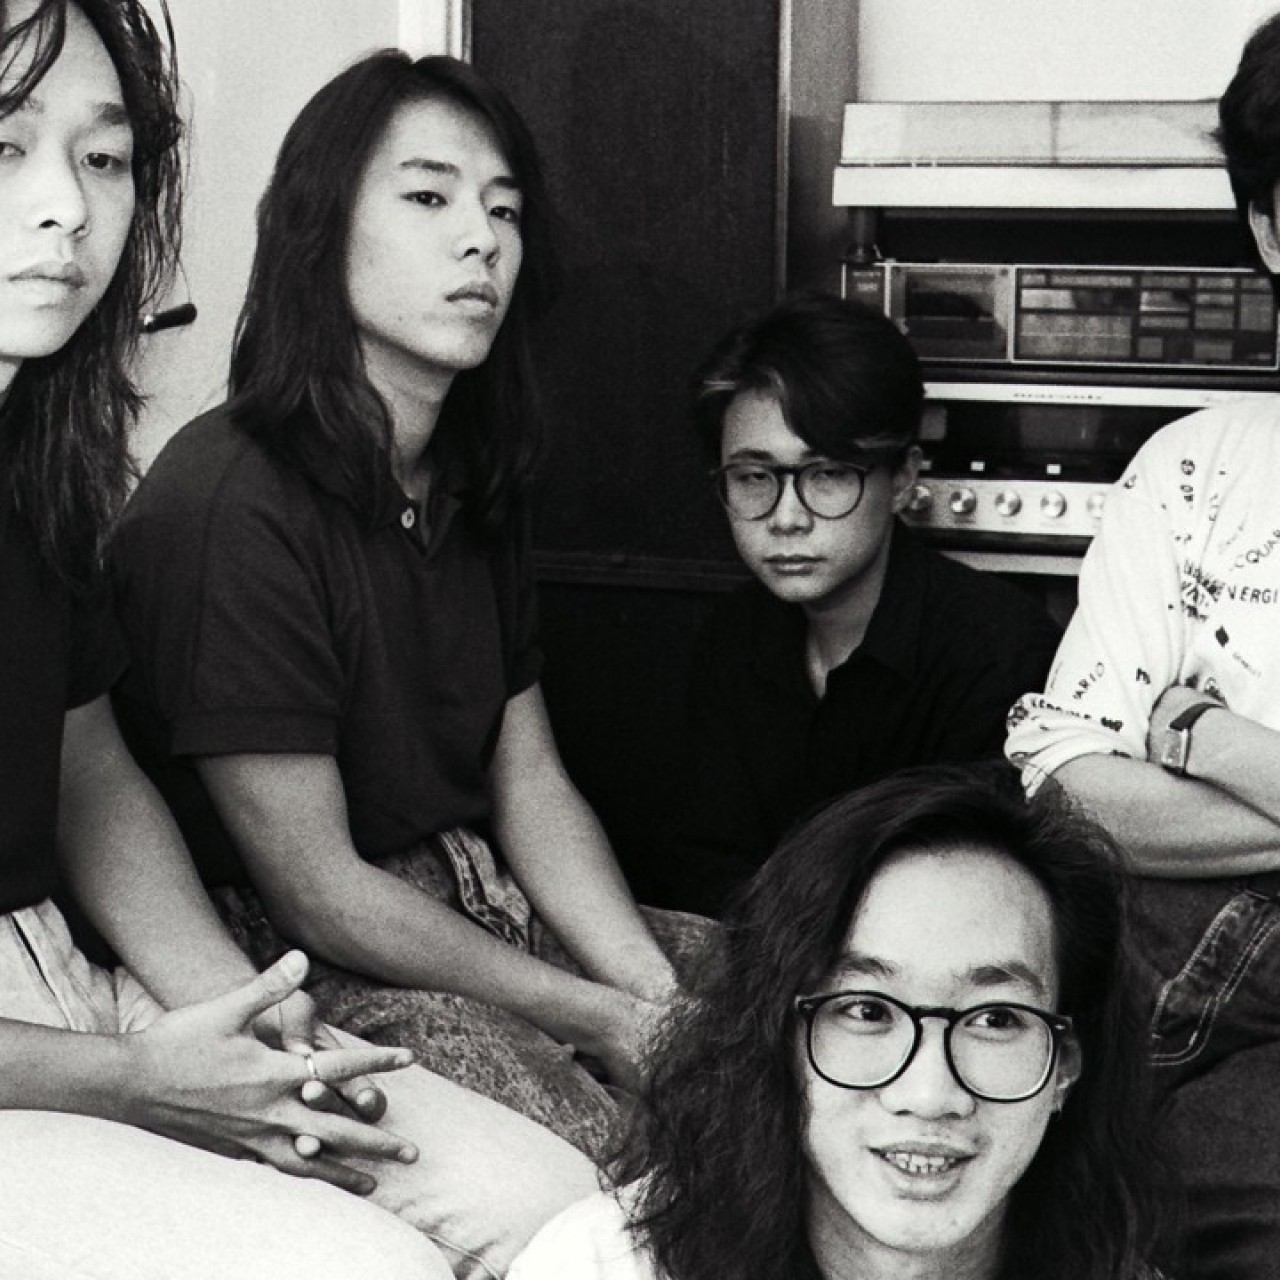 The story of Beyond: 25 years since Hong Kong's biggest rock band